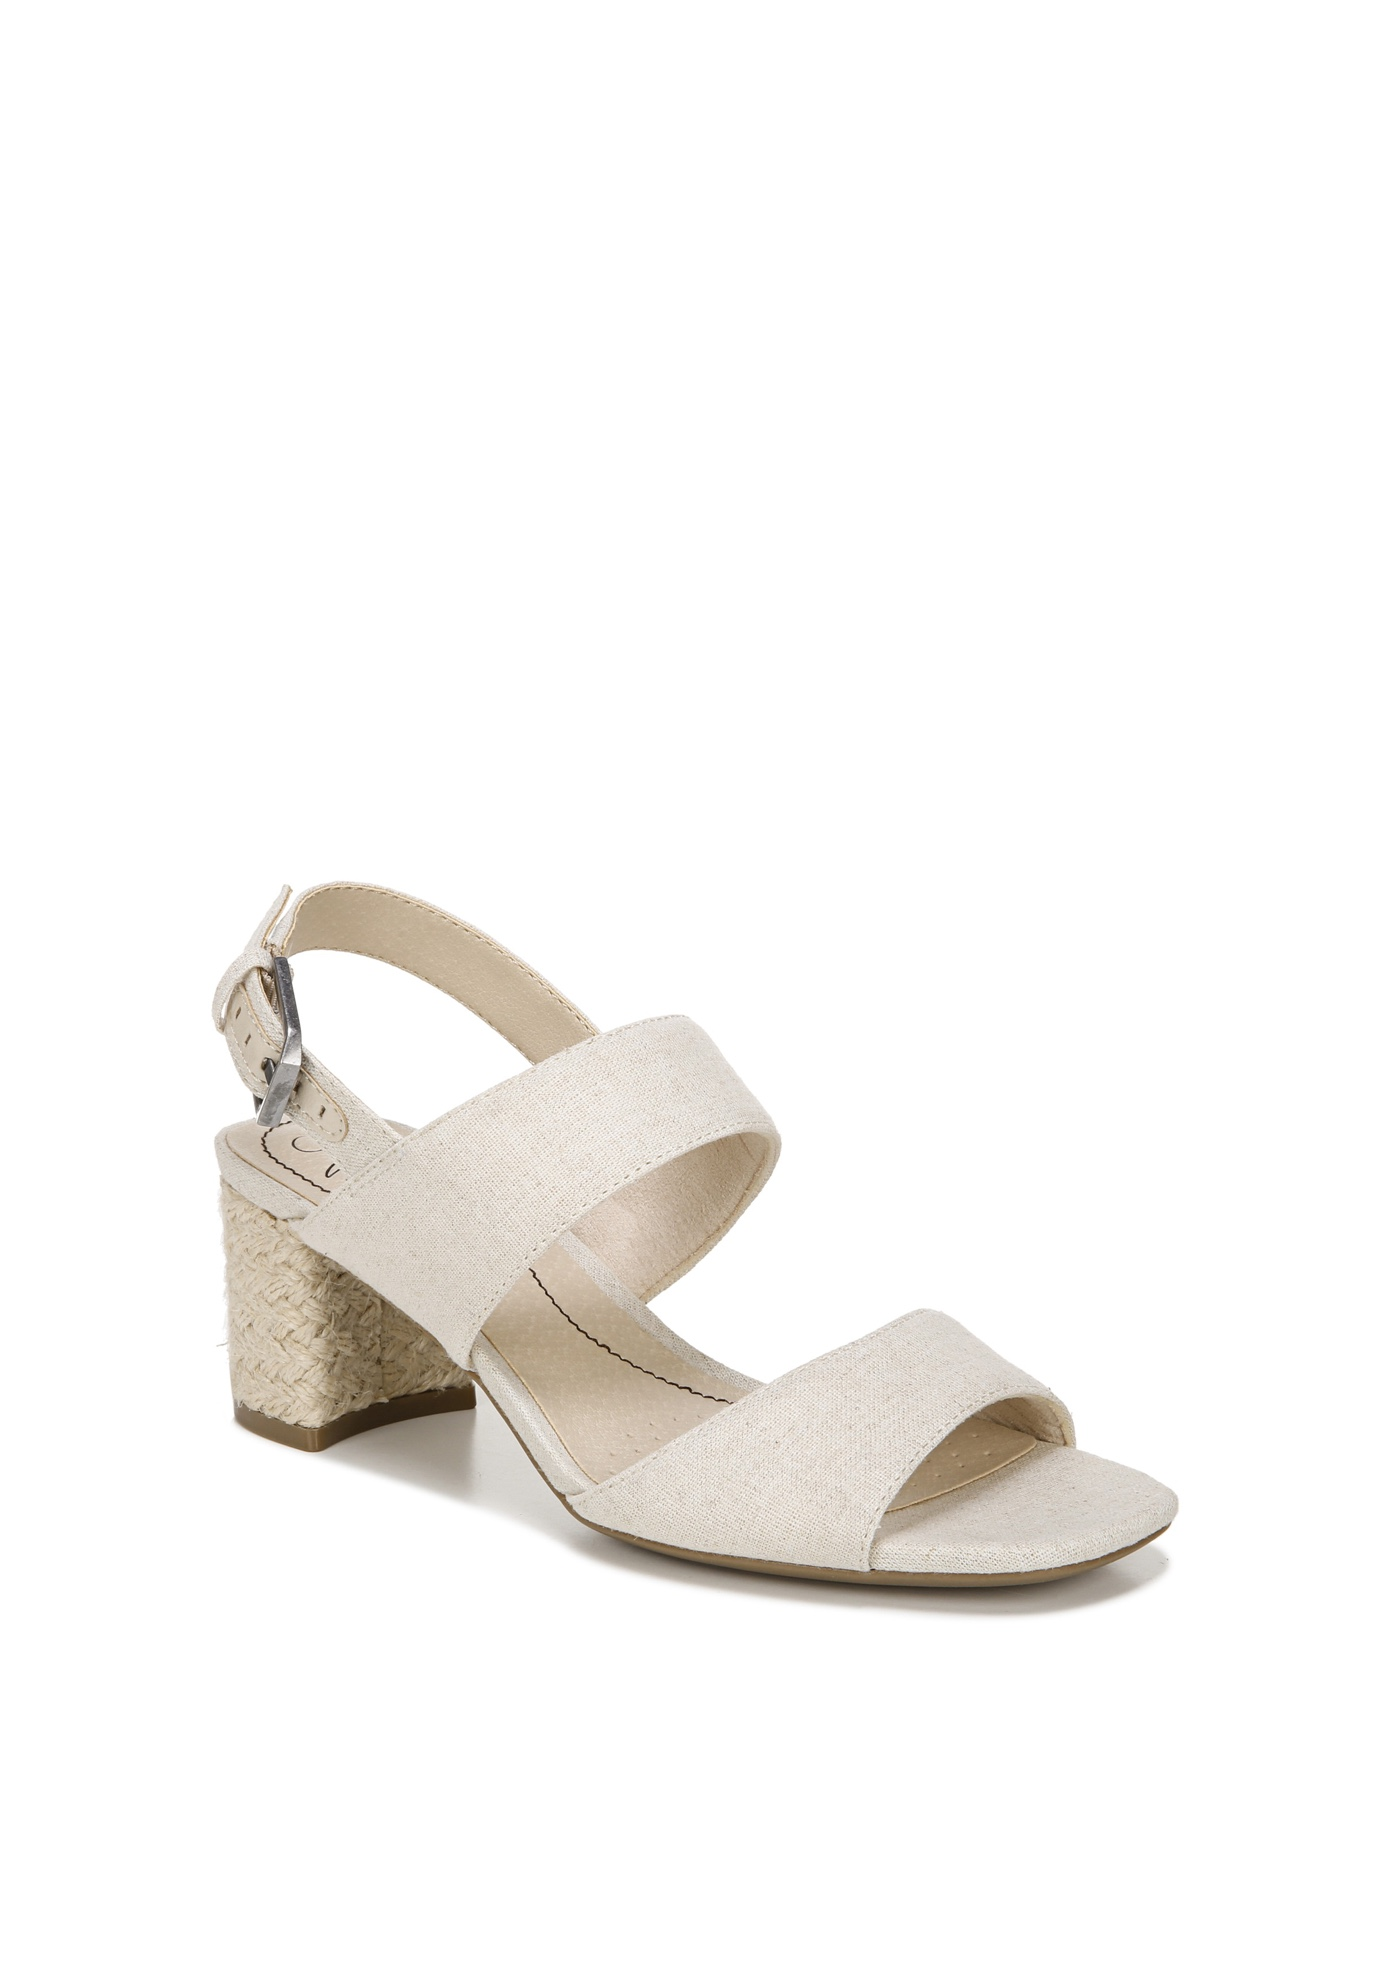 Caldwell Sandals by Lifestride,